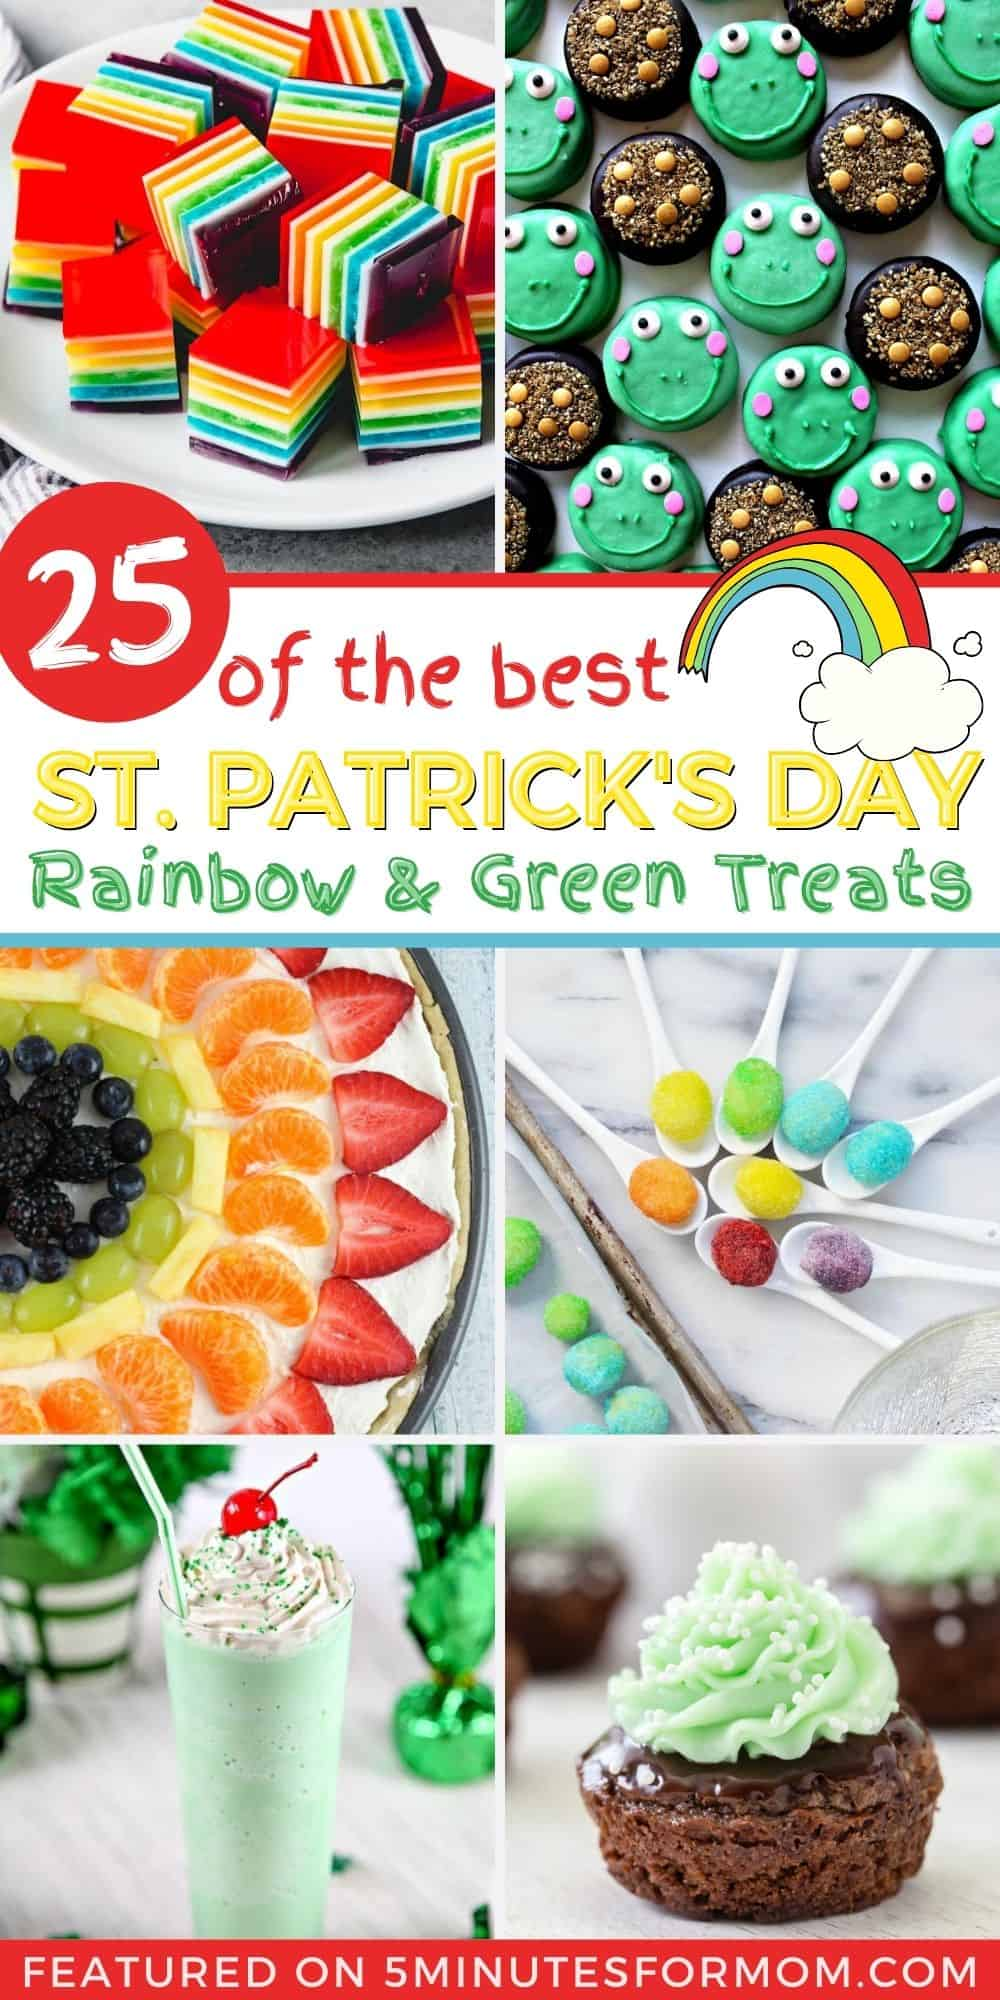 Collage showing cute rainbow and green treats with Title 25 of the Best St Patricks Day Rainbow and Green Treats